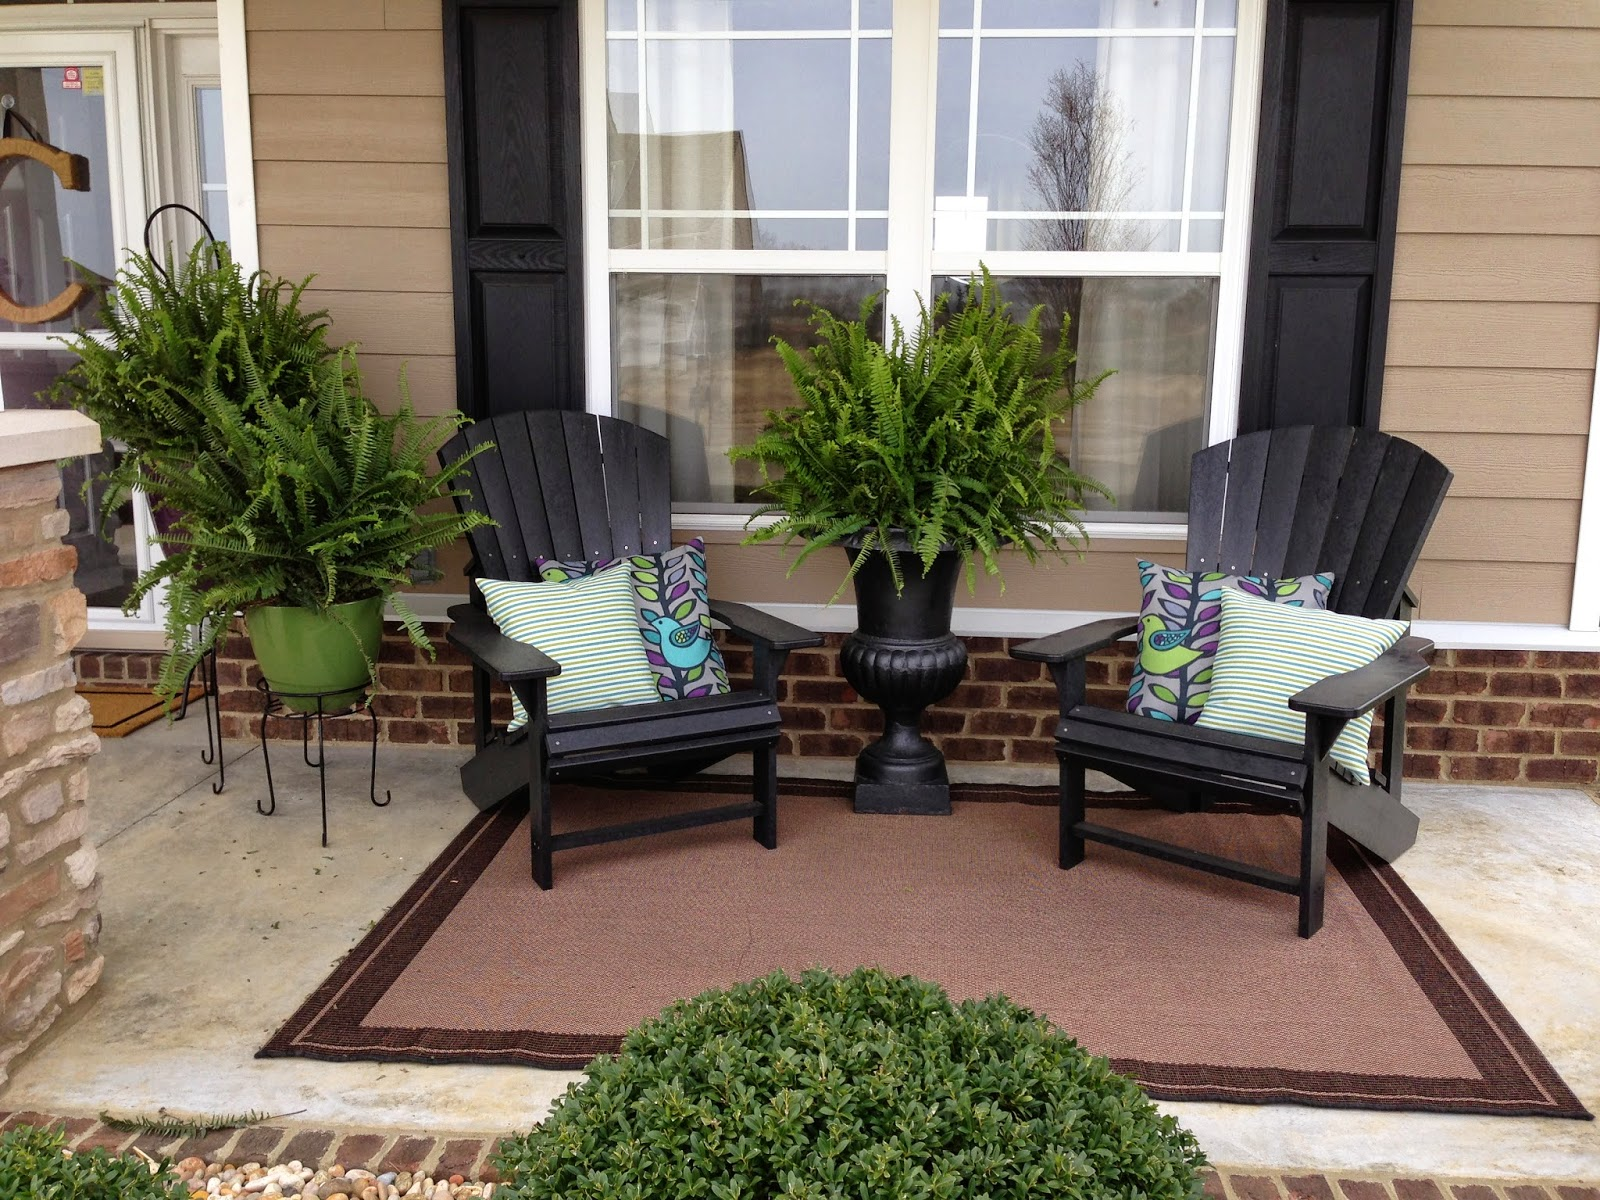 7 front porch decorating ideas pictures for your home Front veranda decorating ideas